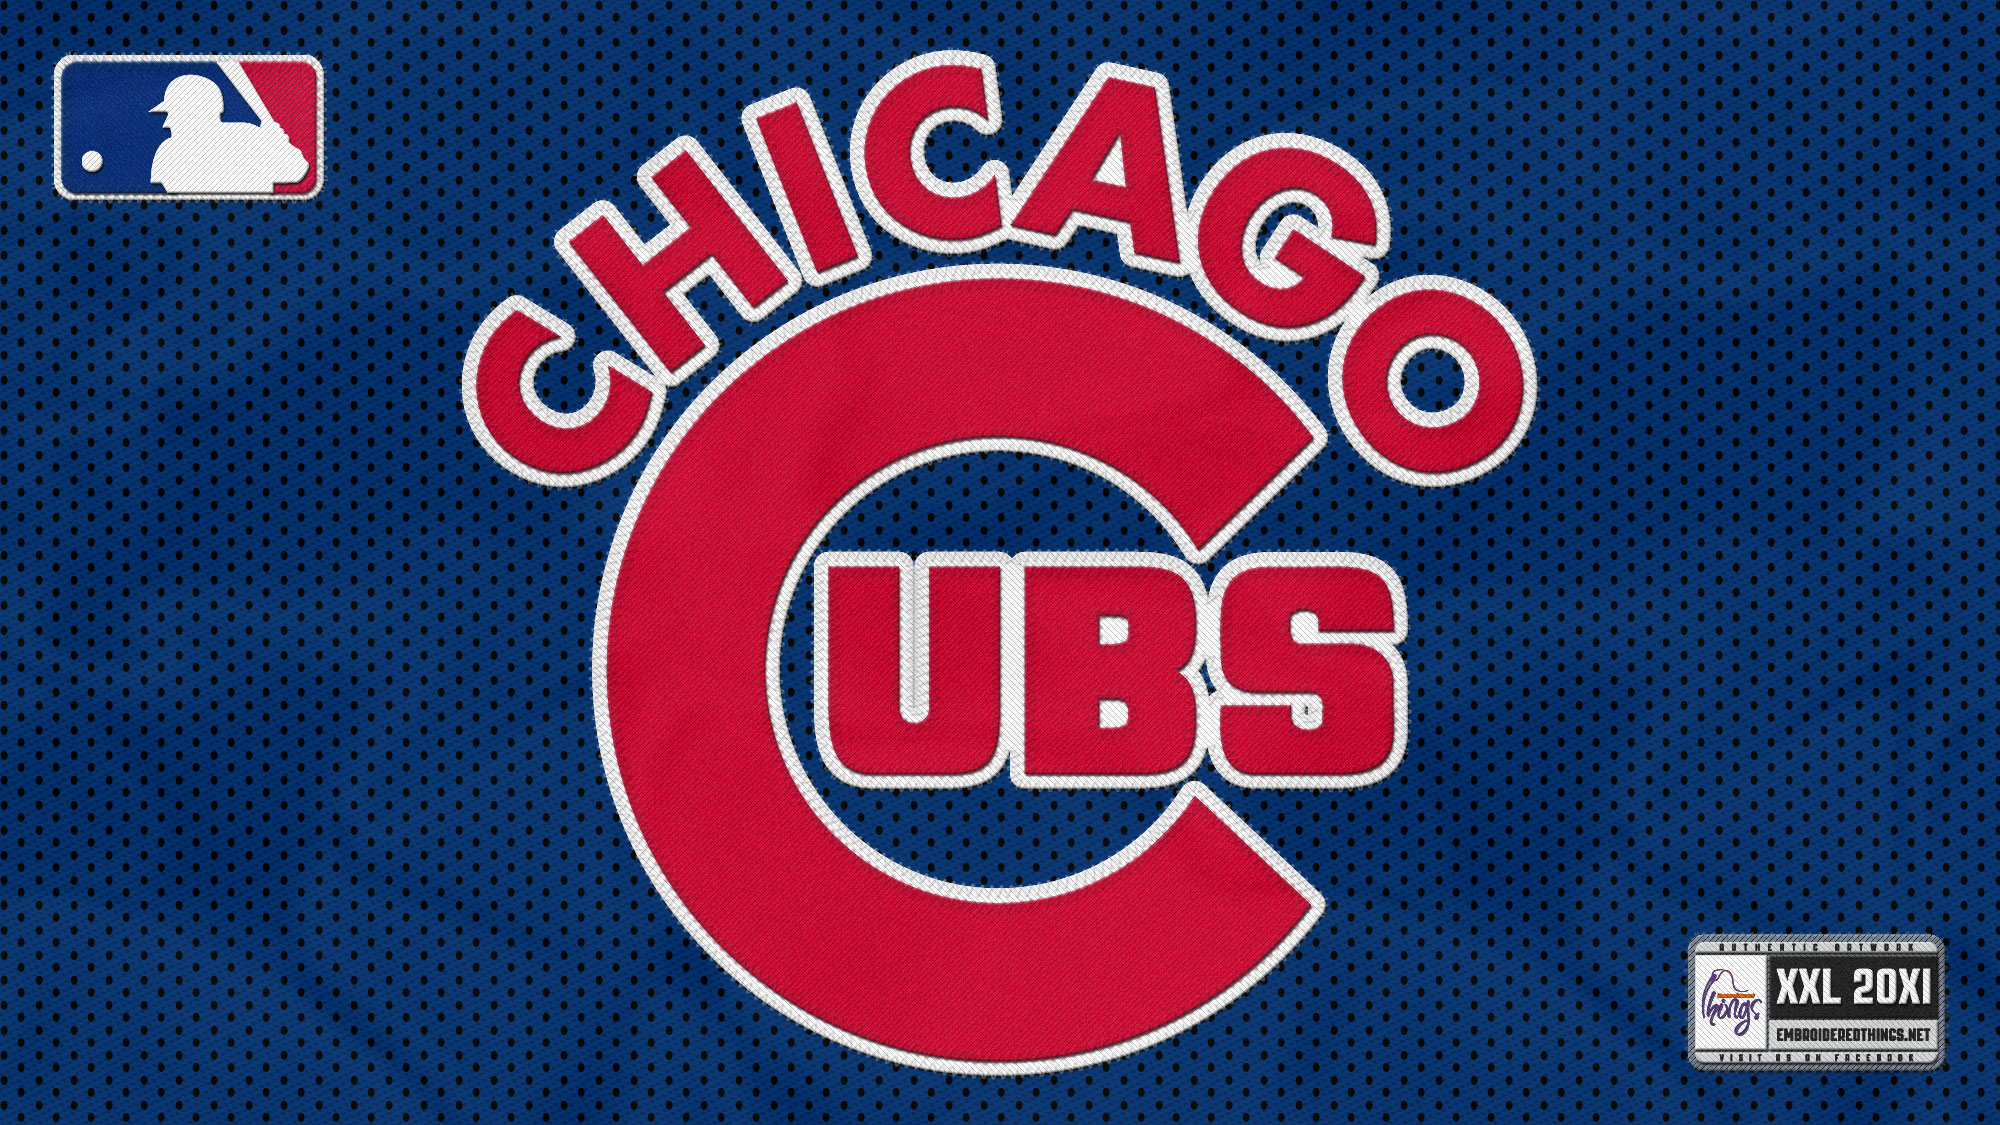 Chicago Cubs wallpapers Chicago Cubs background   Page 2 2000x1125